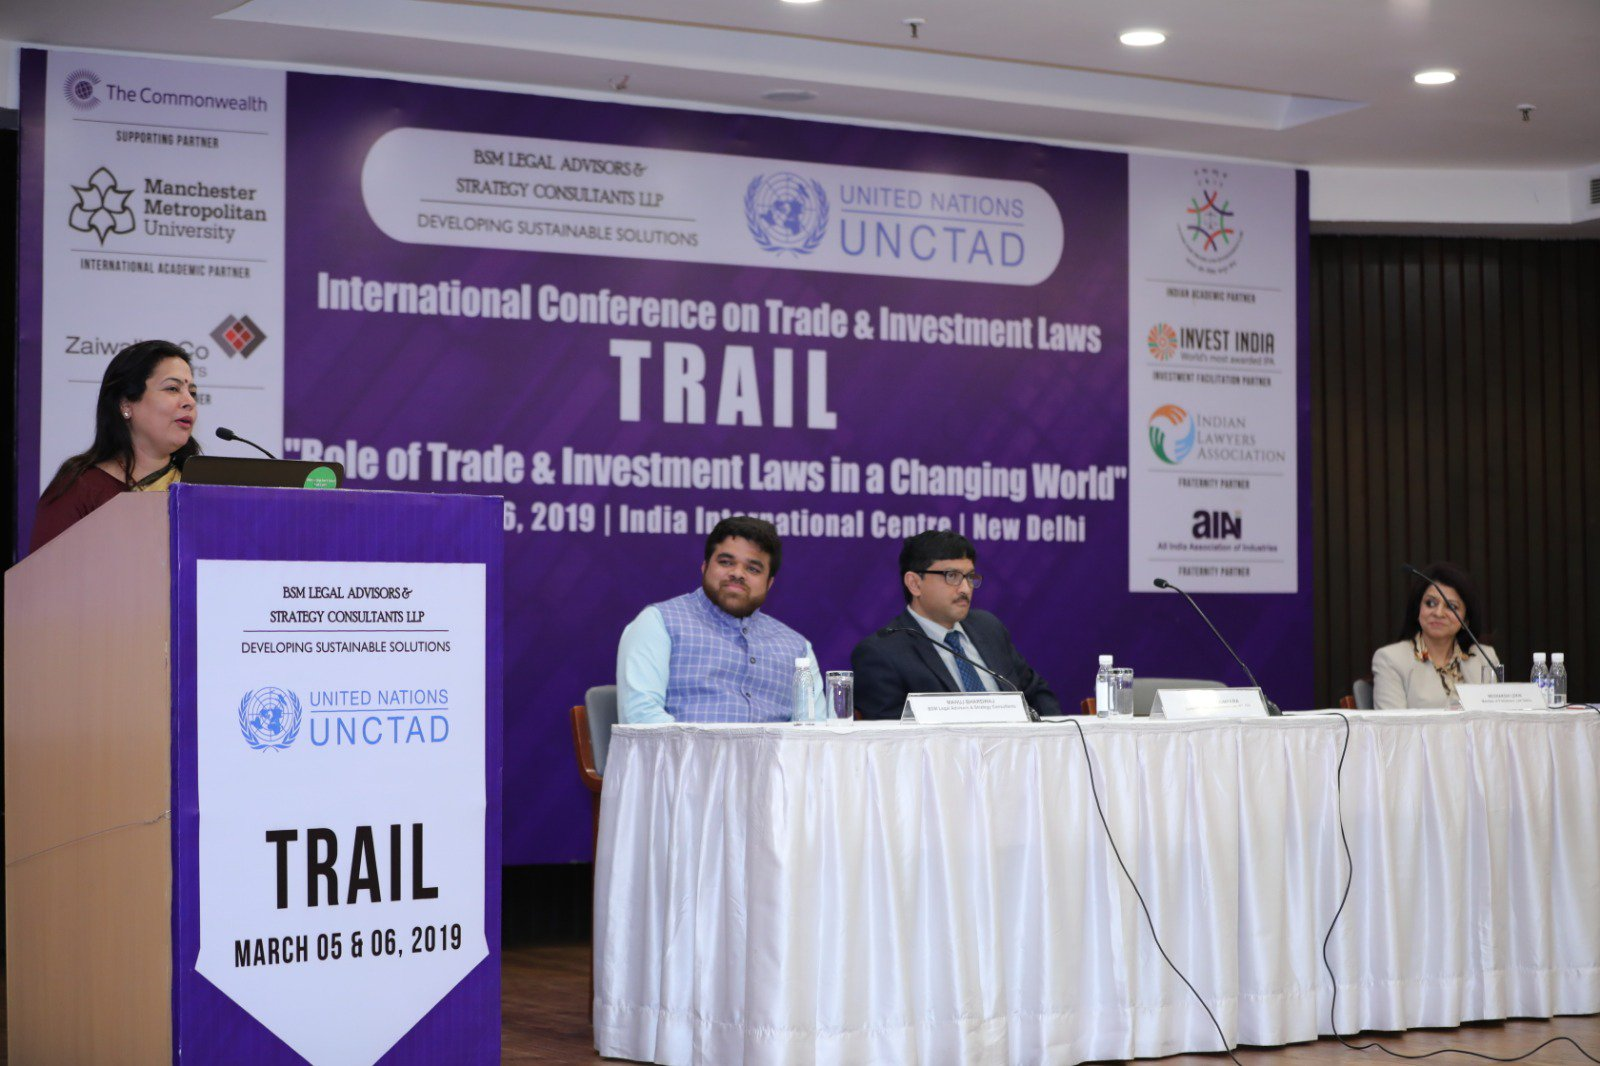 Ms. Meenakshi Lekhi, MP speaking at International Conference on Trade & Investment Laws (TRAIL)